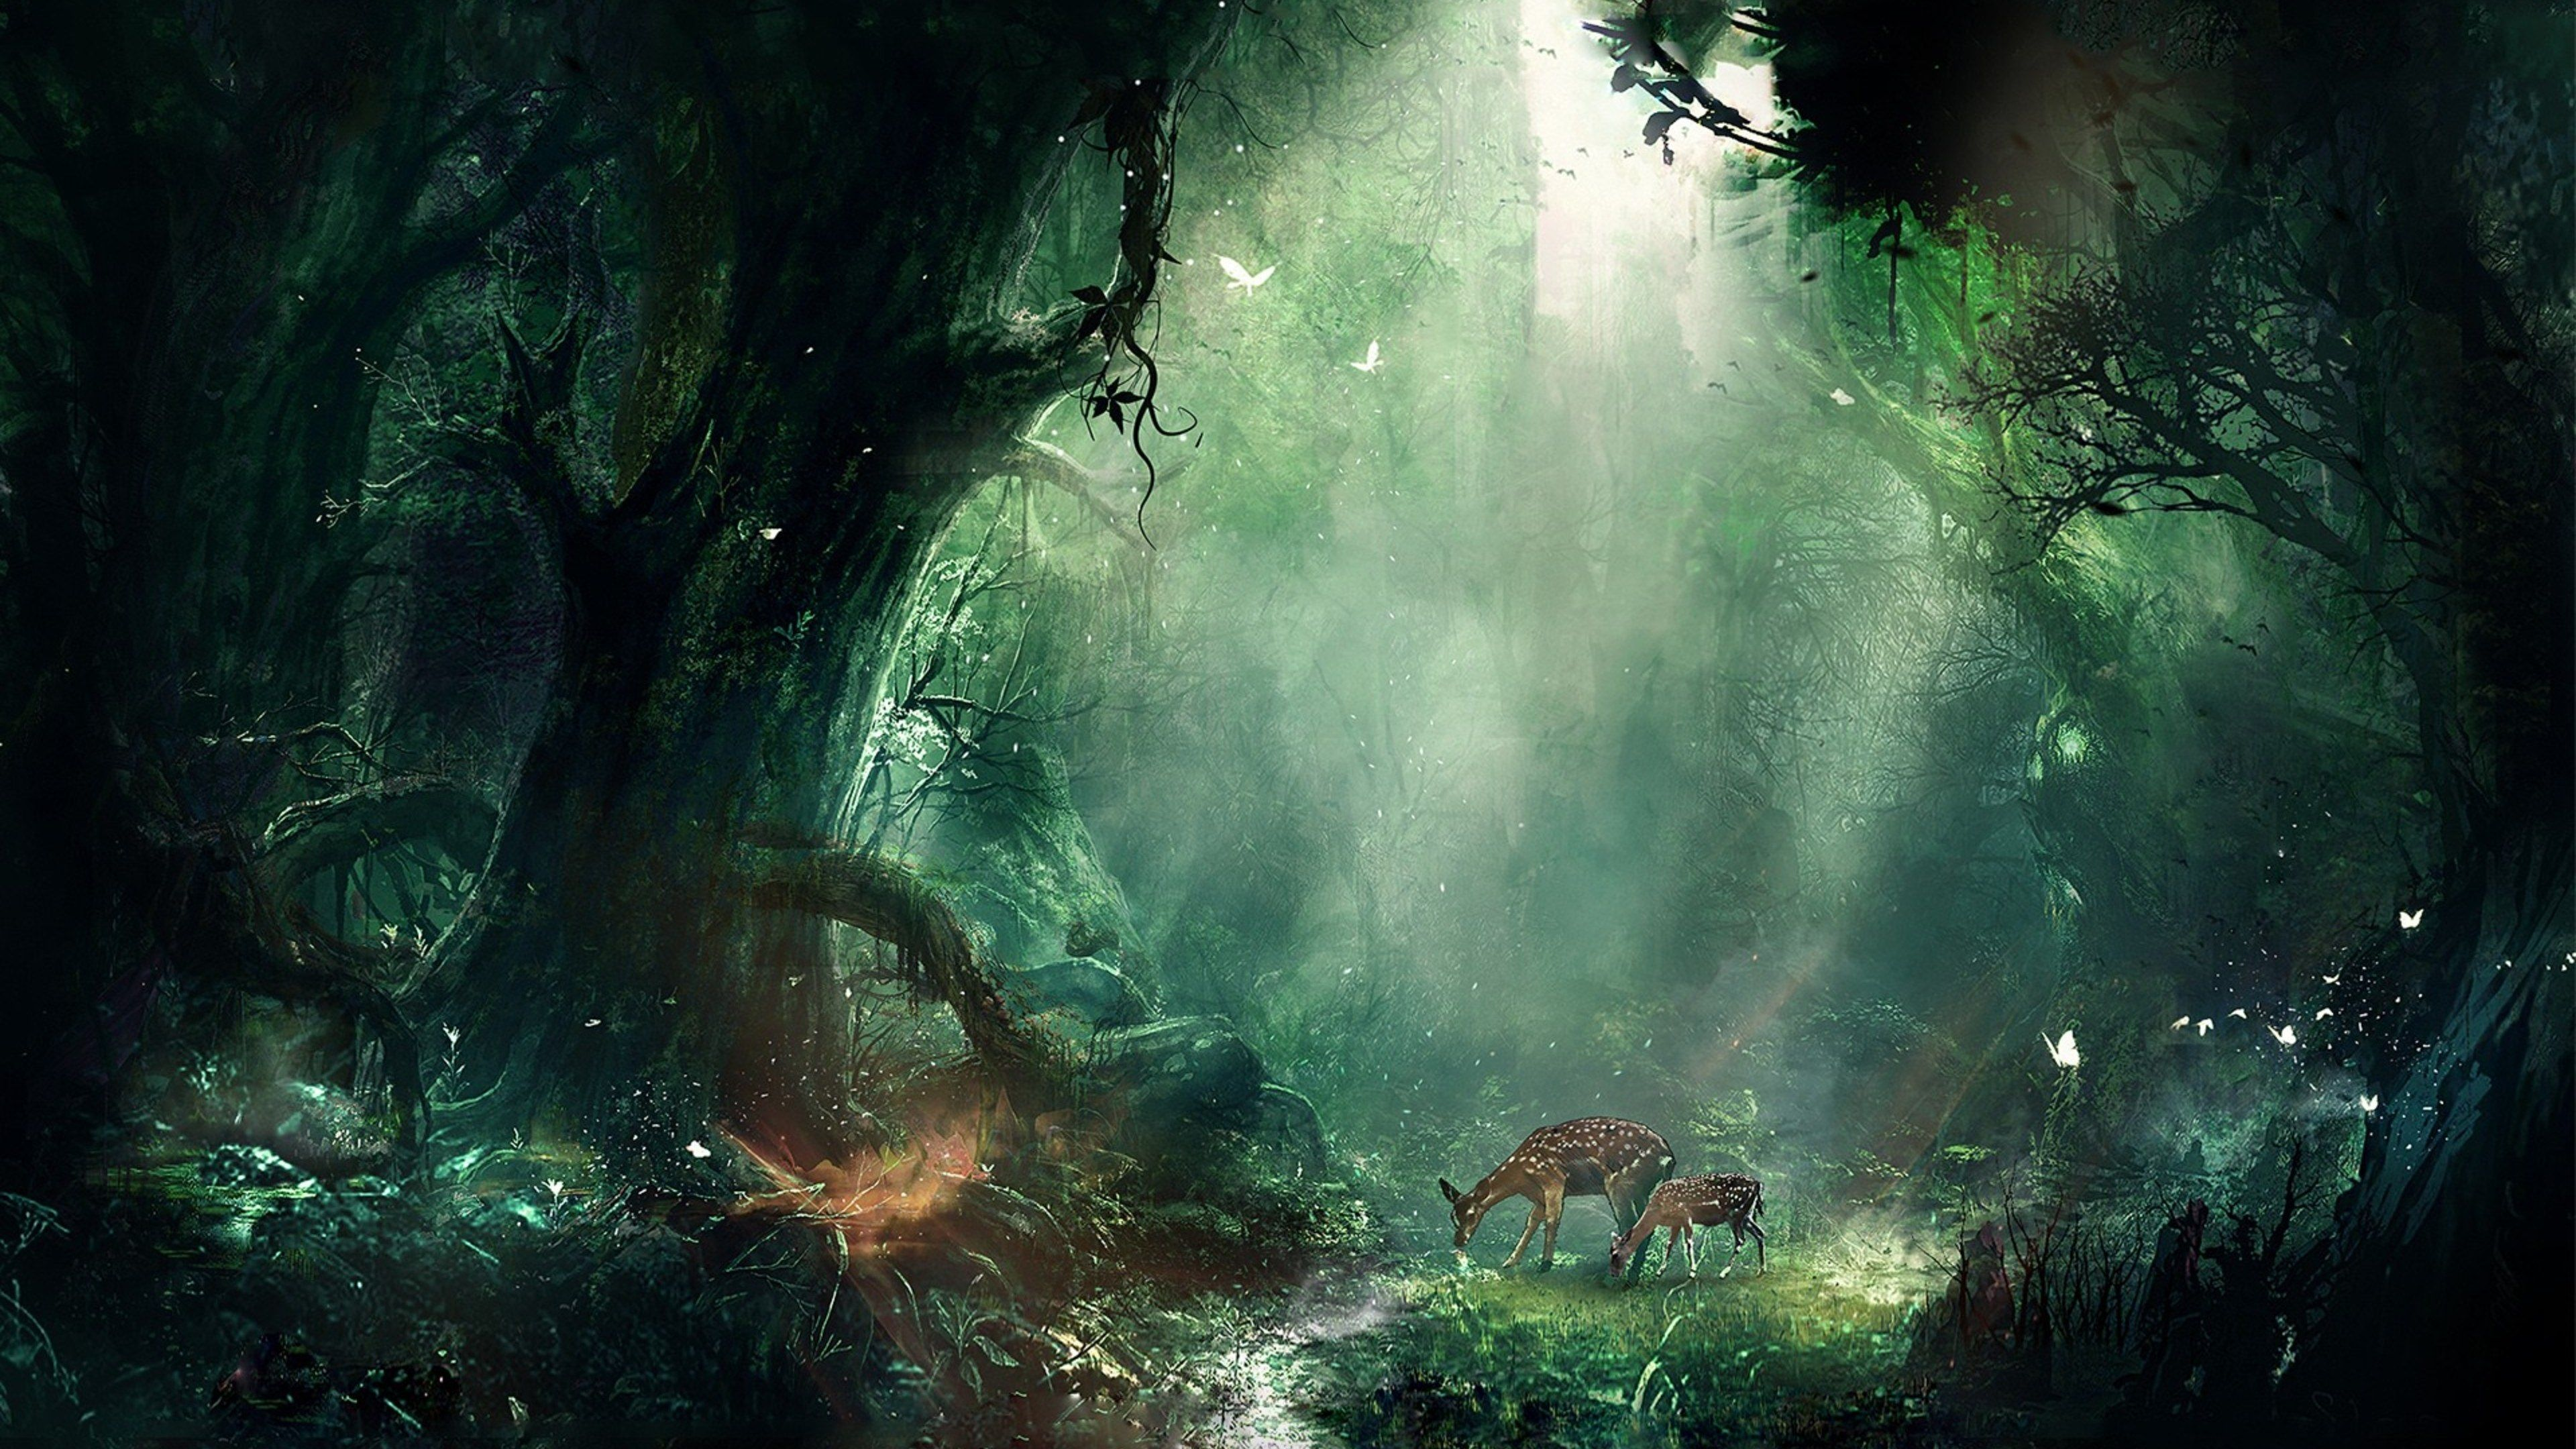 3840x2160 Creative 4k Hd Background Image Fantasy Landscape Fantasy Forest Deer Wallpaper